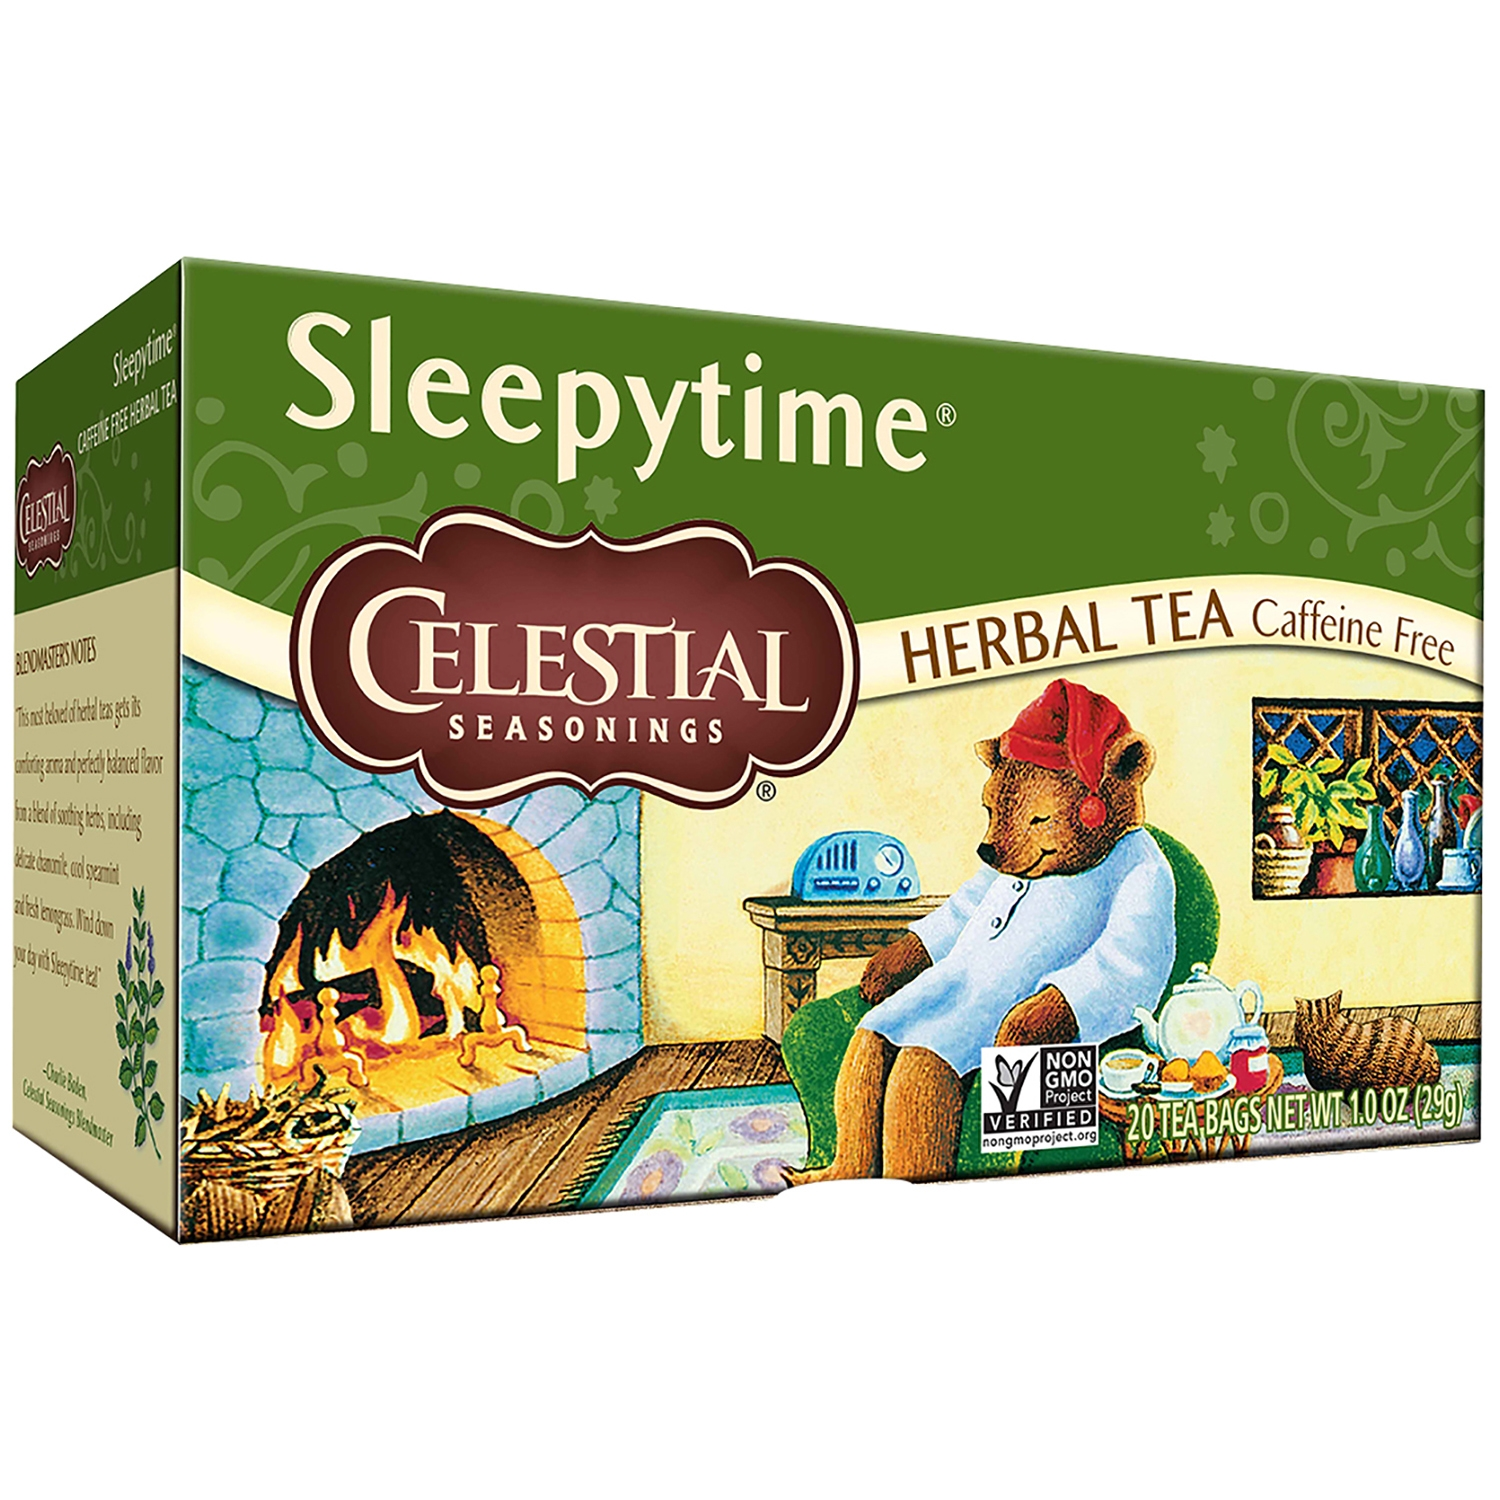 Celestial Seasonings® Sleepytime® Herbal Tea Bags 20 ct Box